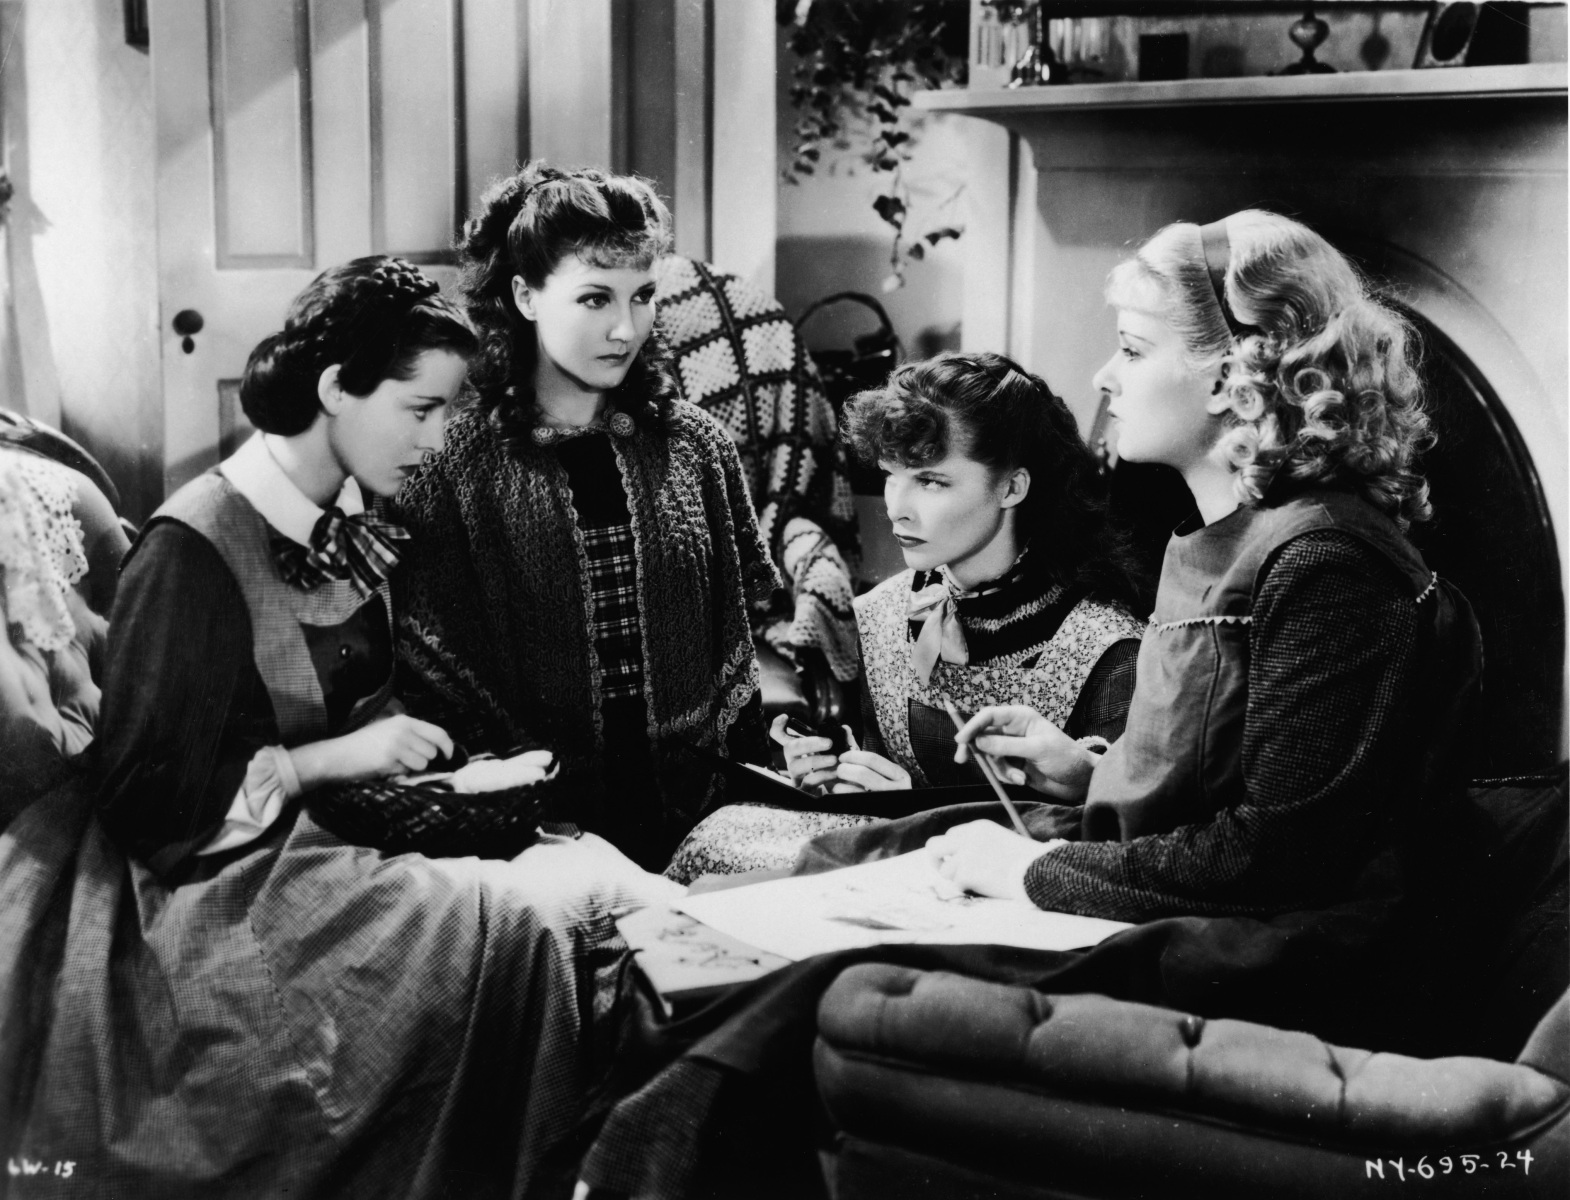 American actresses (left to right) Frances Dee (1909 - 2004), Jean Parker, Katharine Hepburn (1907 - 2003), and Joan Bennett (1910 - 1990) sit and glare at one another as the March girls in this still from a film adaptation of Louisa May Alcott's 'Little Women' directed by George Cukor, 1933. (Photo by RKO Pictures/Courtesy of Getty Images)